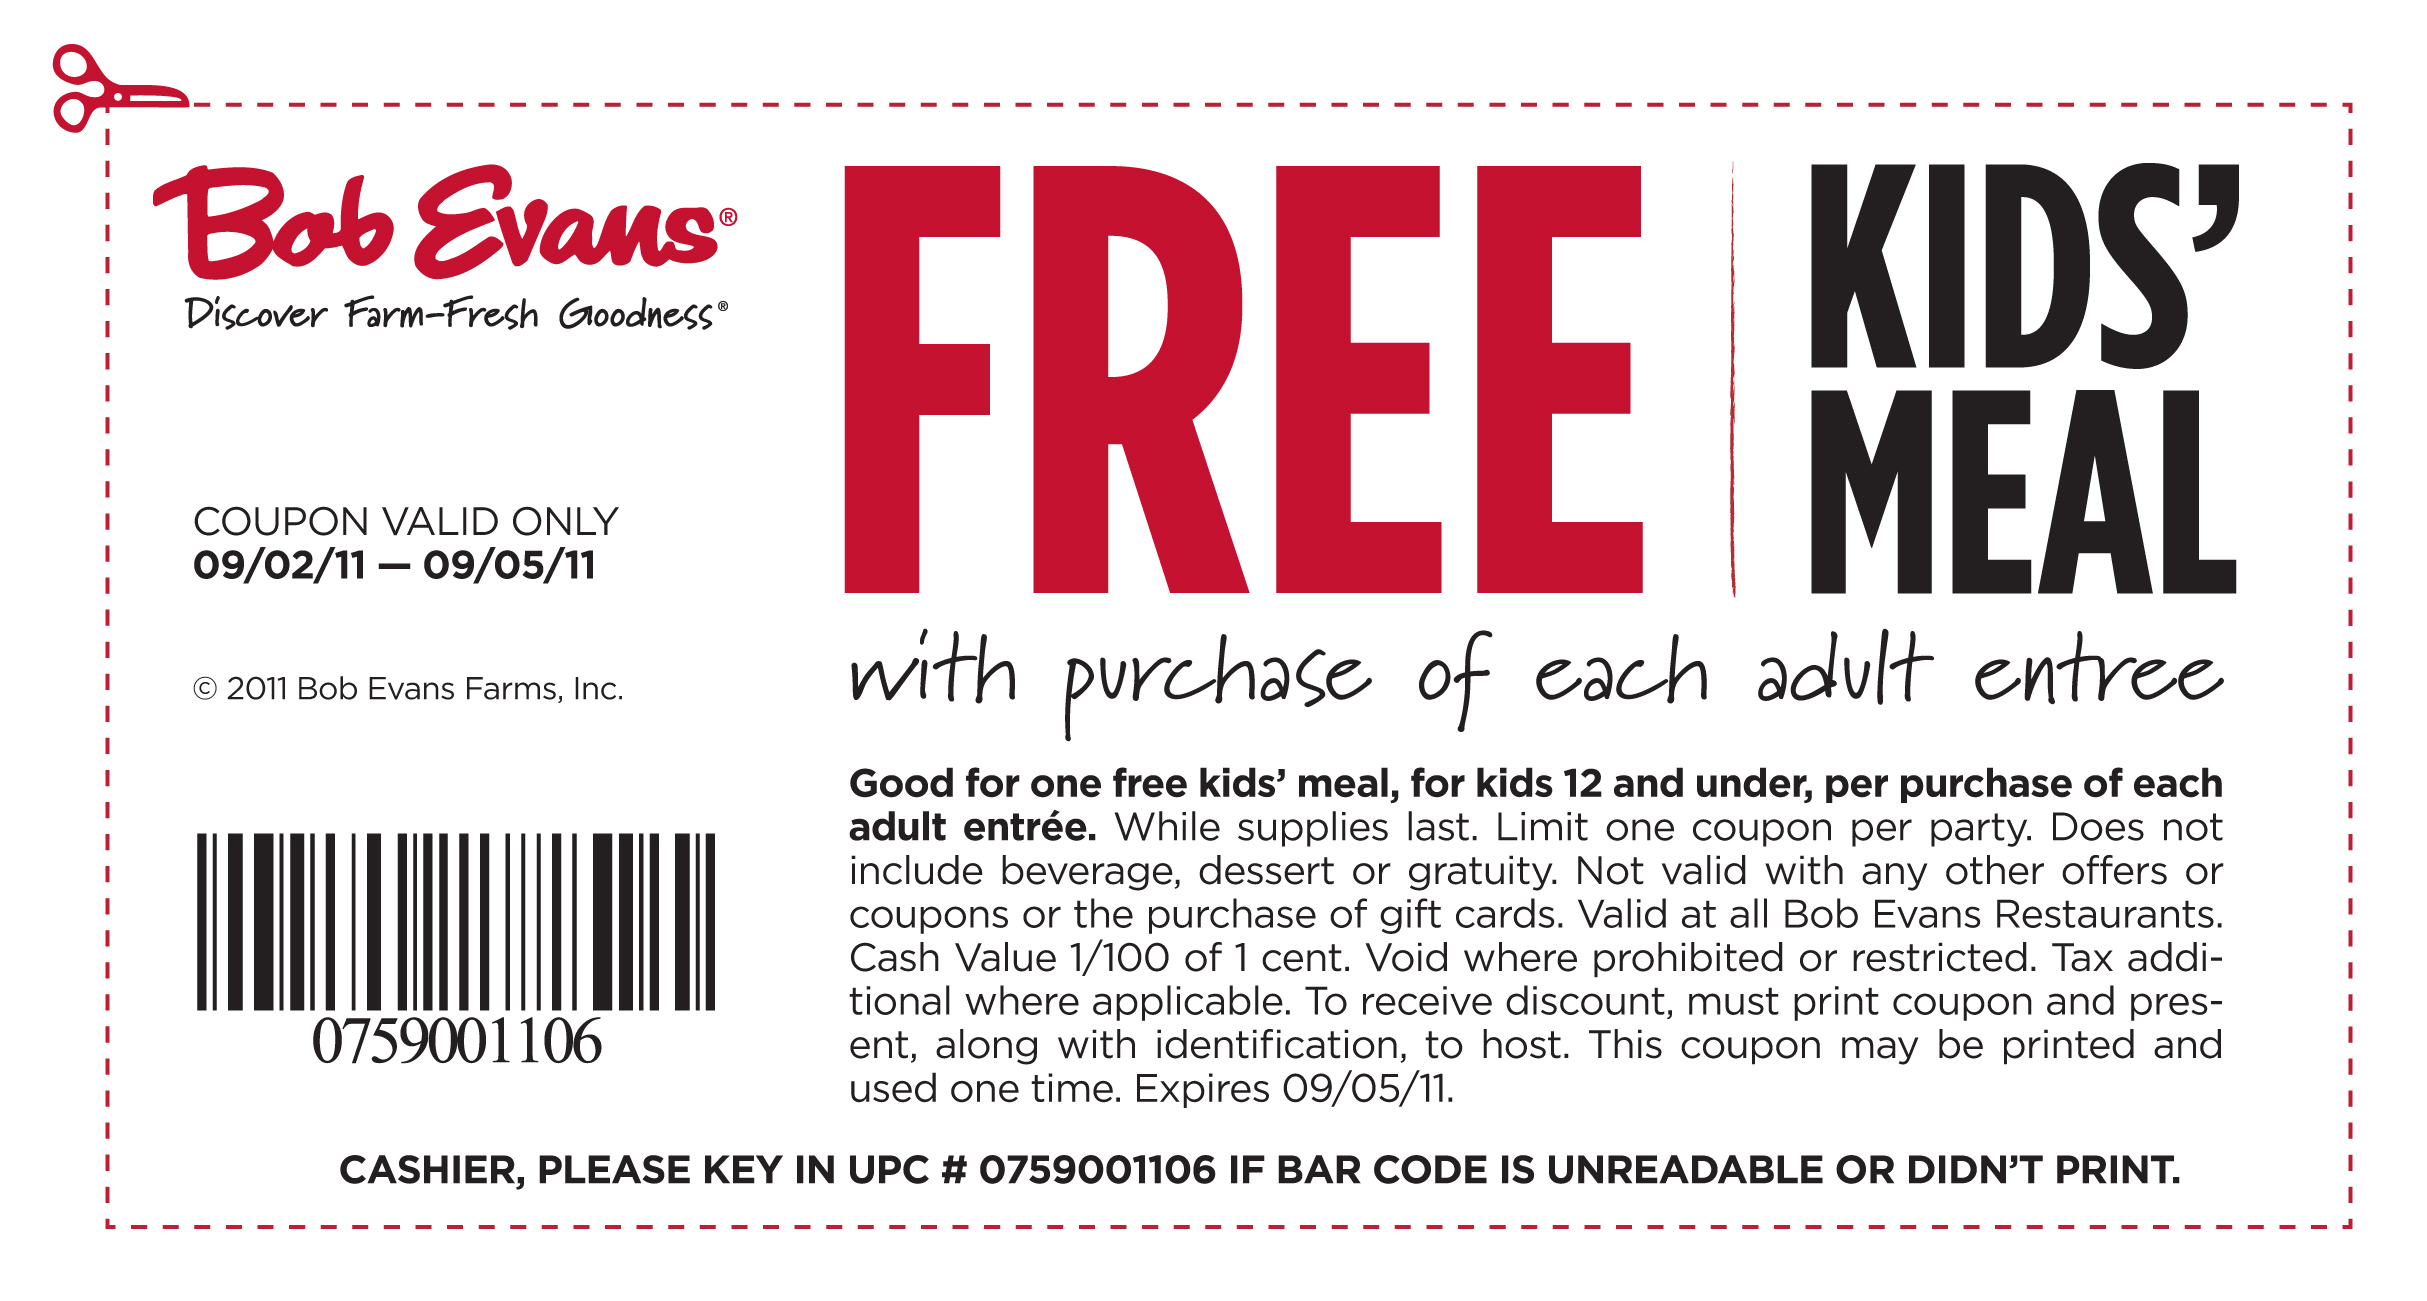 Bob Evans Free Kids Meal Coupon Valid Labor Day Weekend